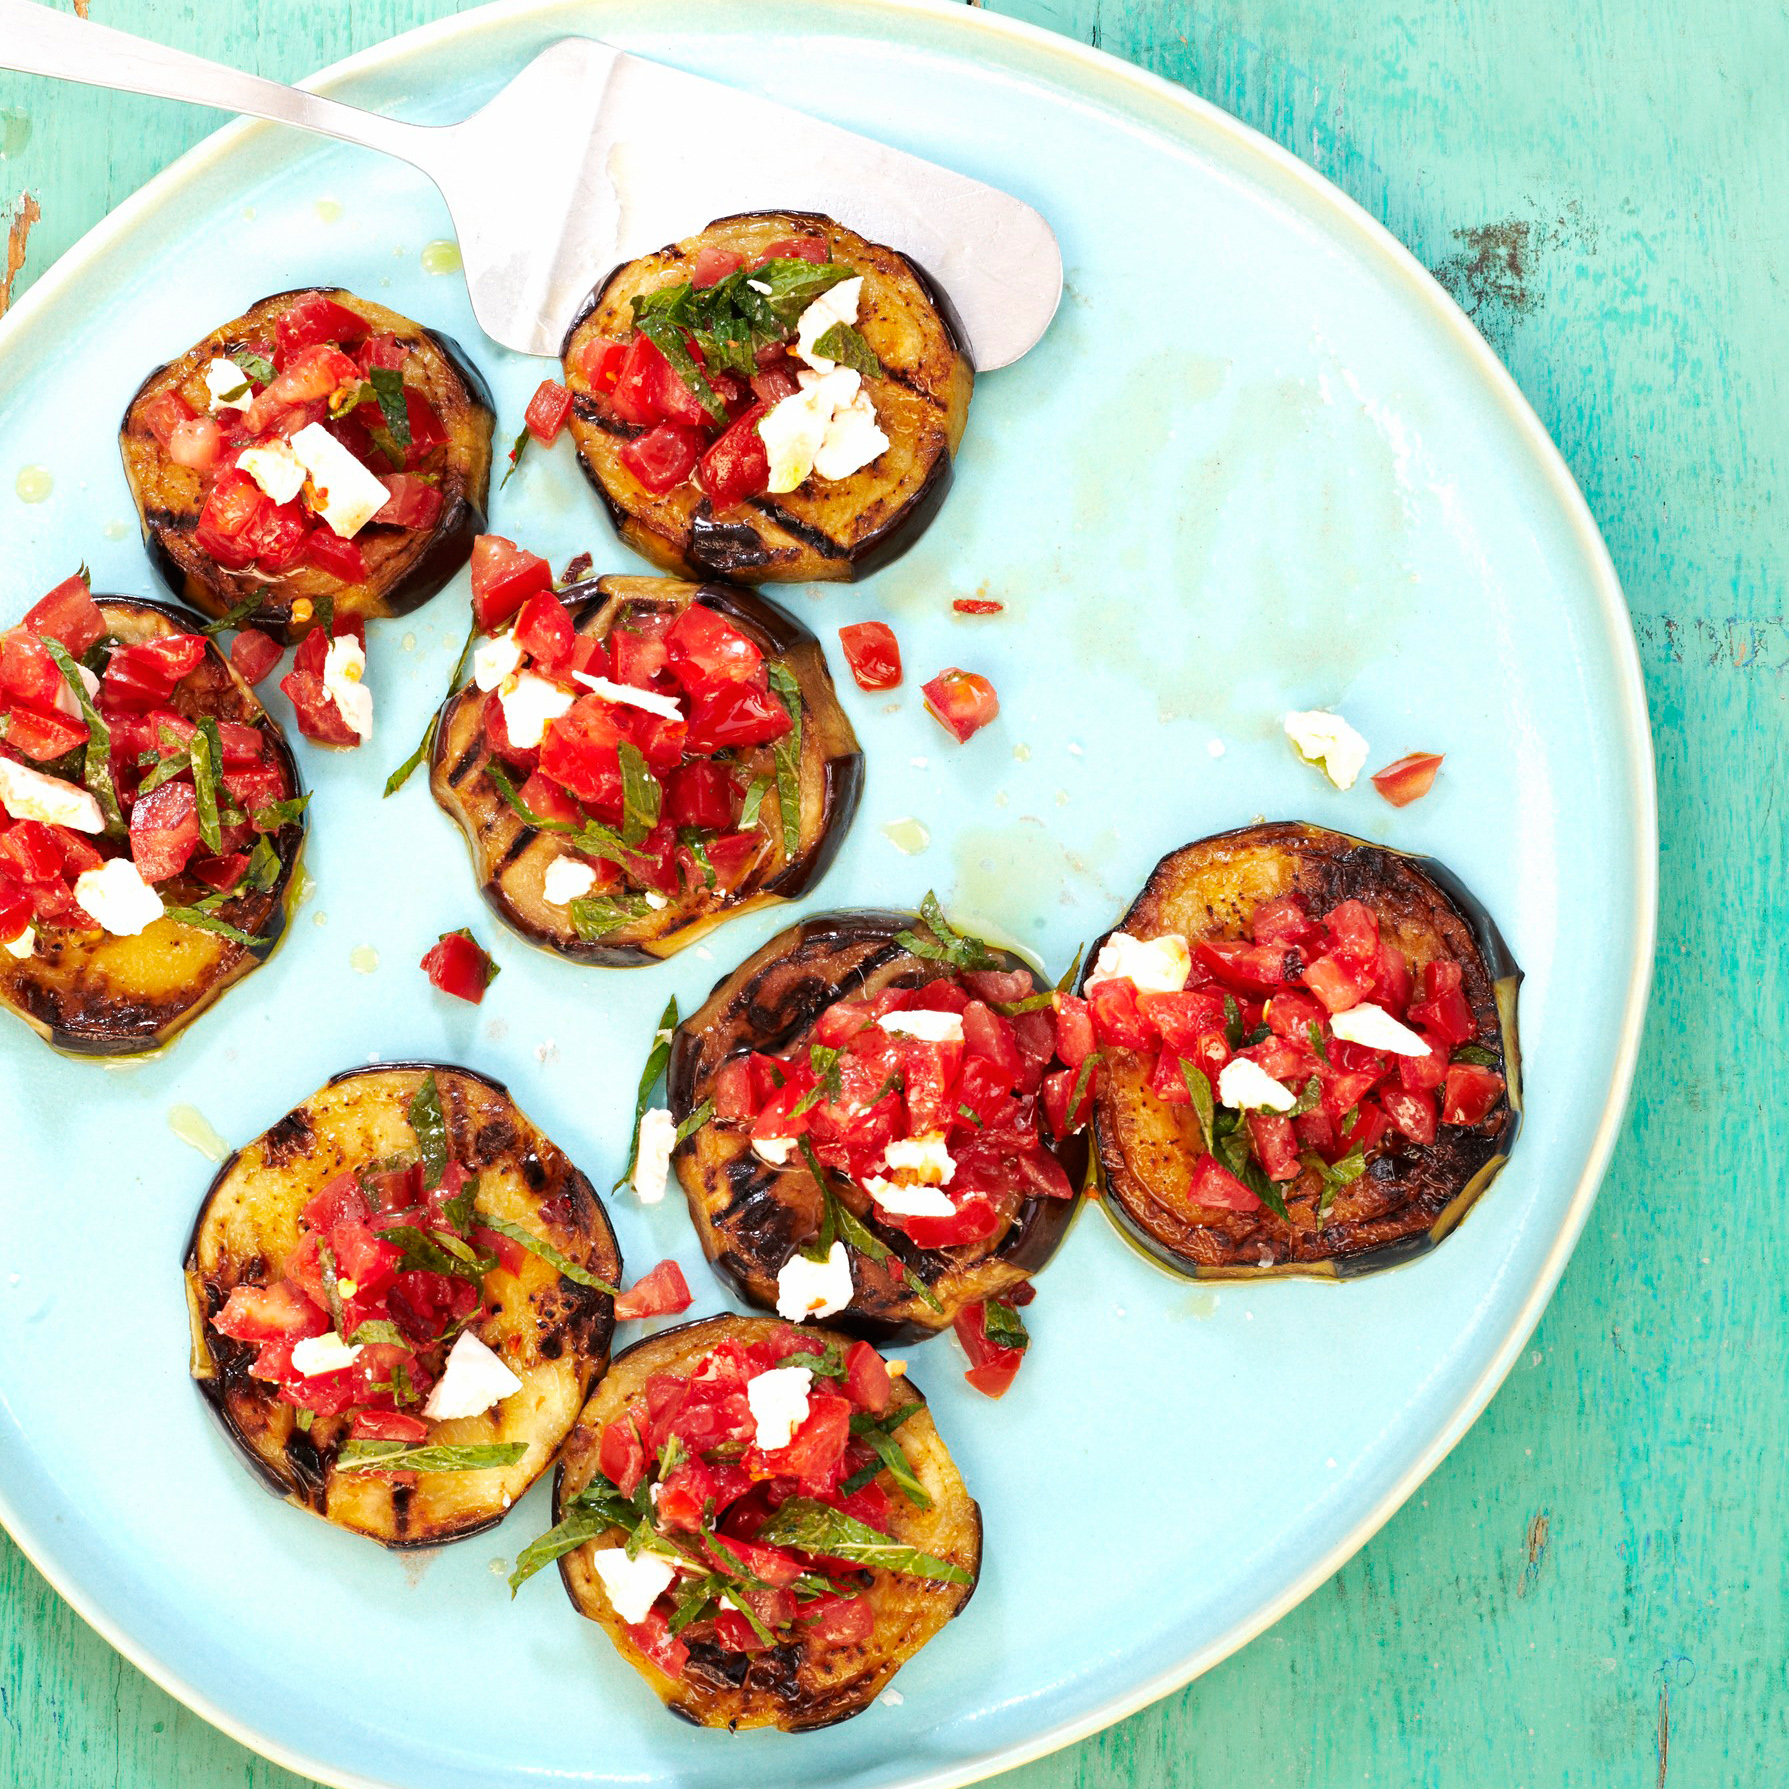 Smoky Grilled Eggplant with Spicy Tomato Topping